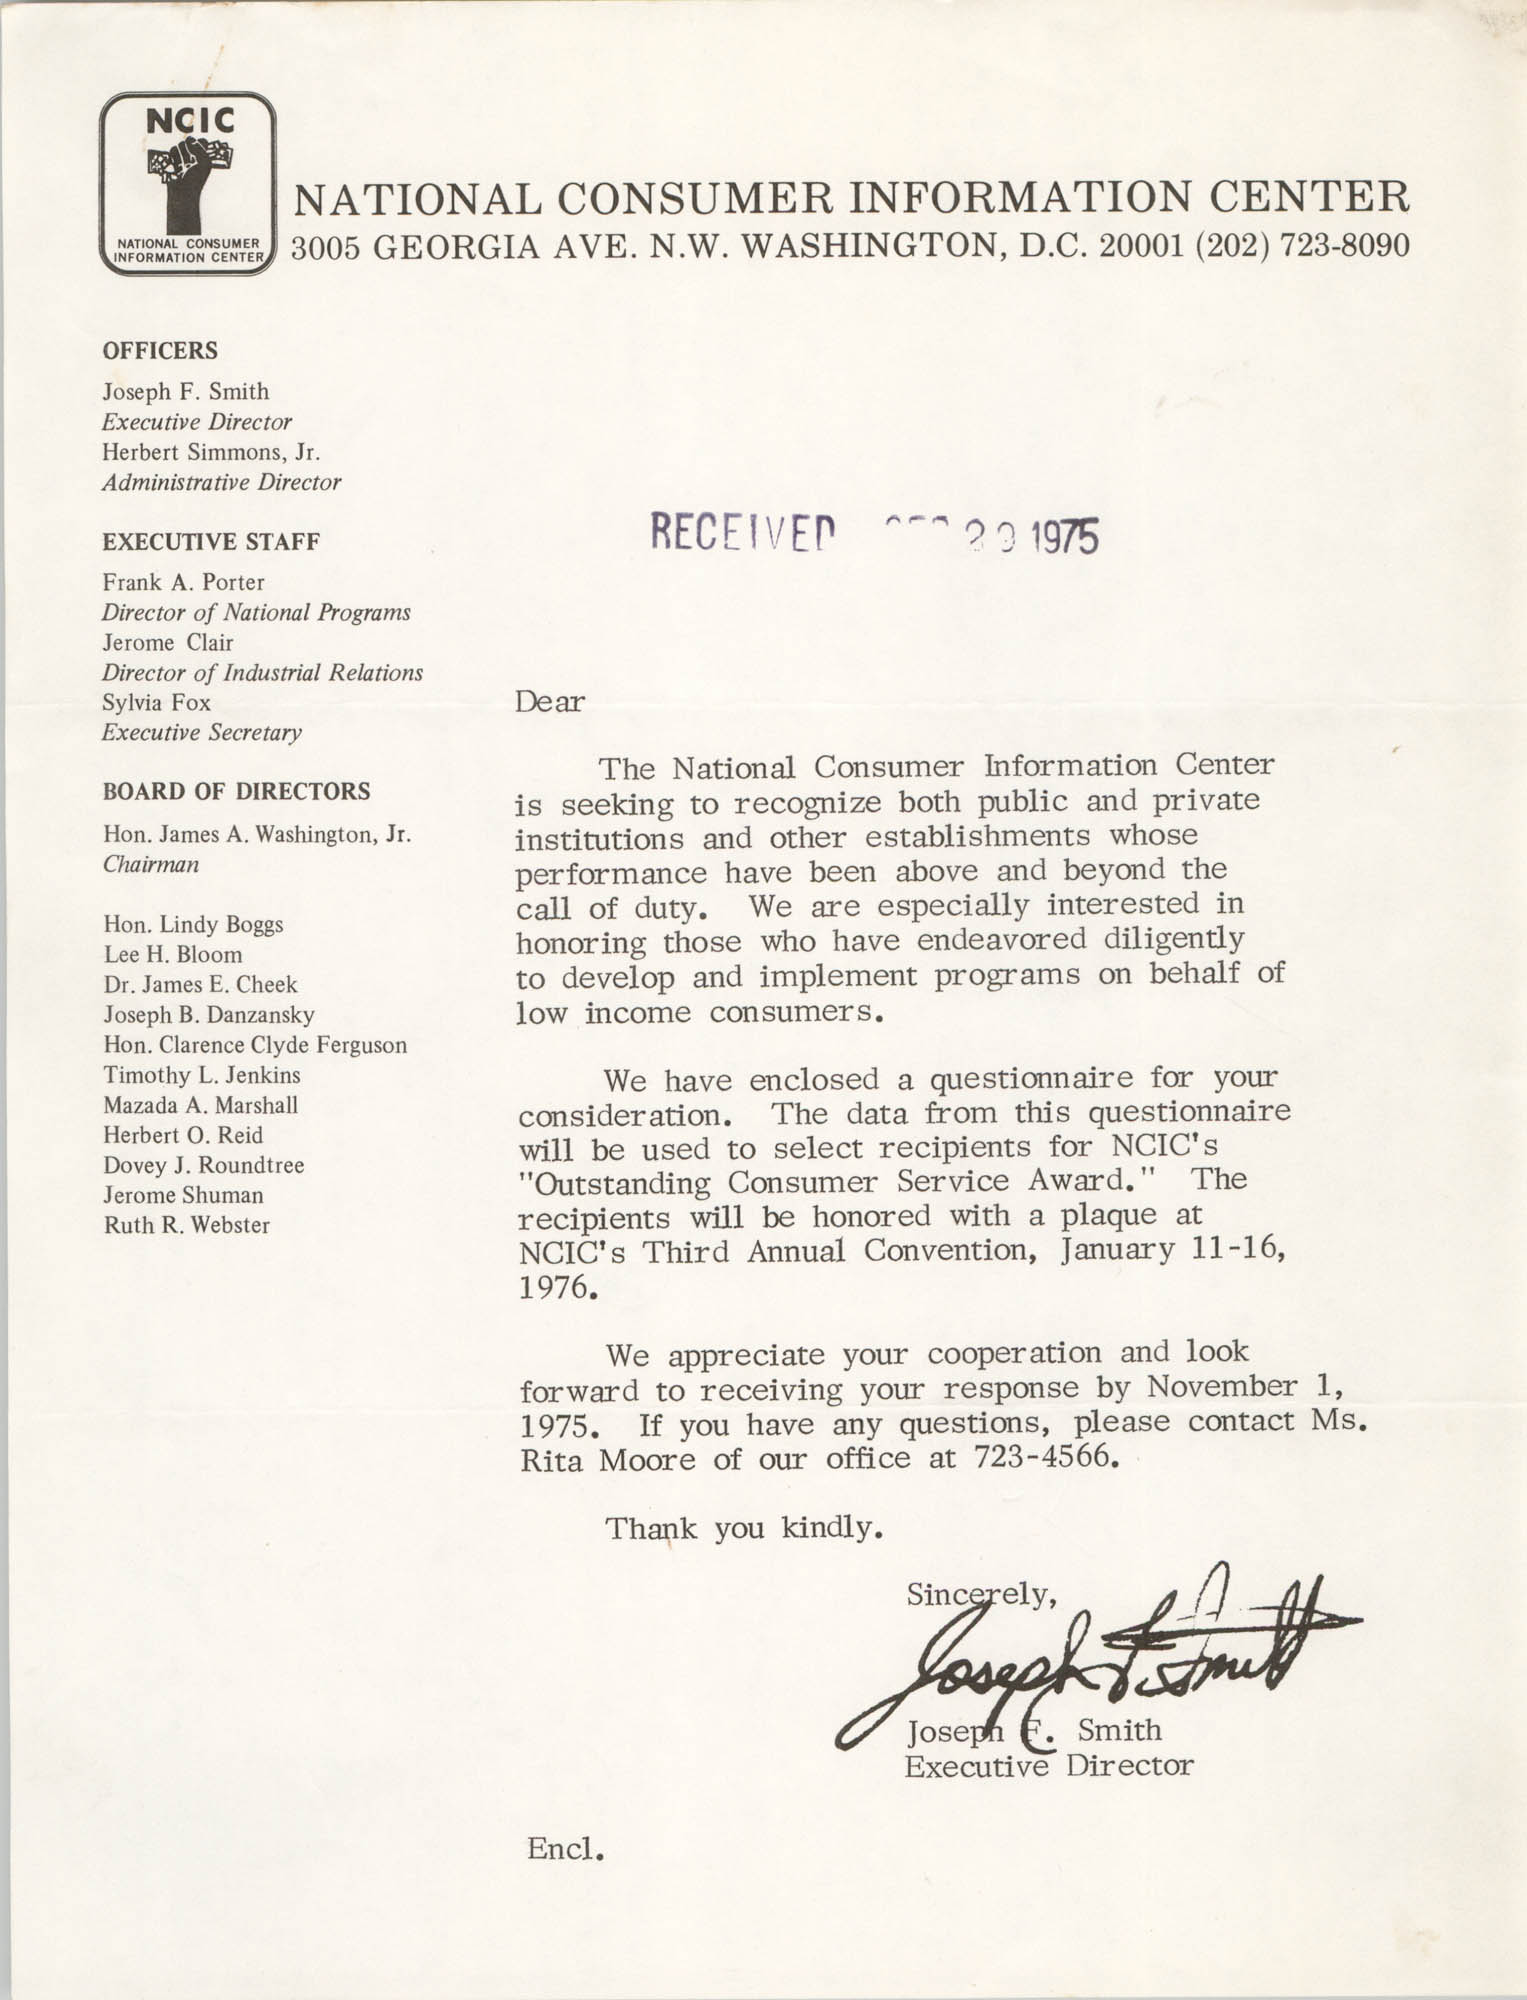 Letter from Joseph F. Smith, September 29, 1975